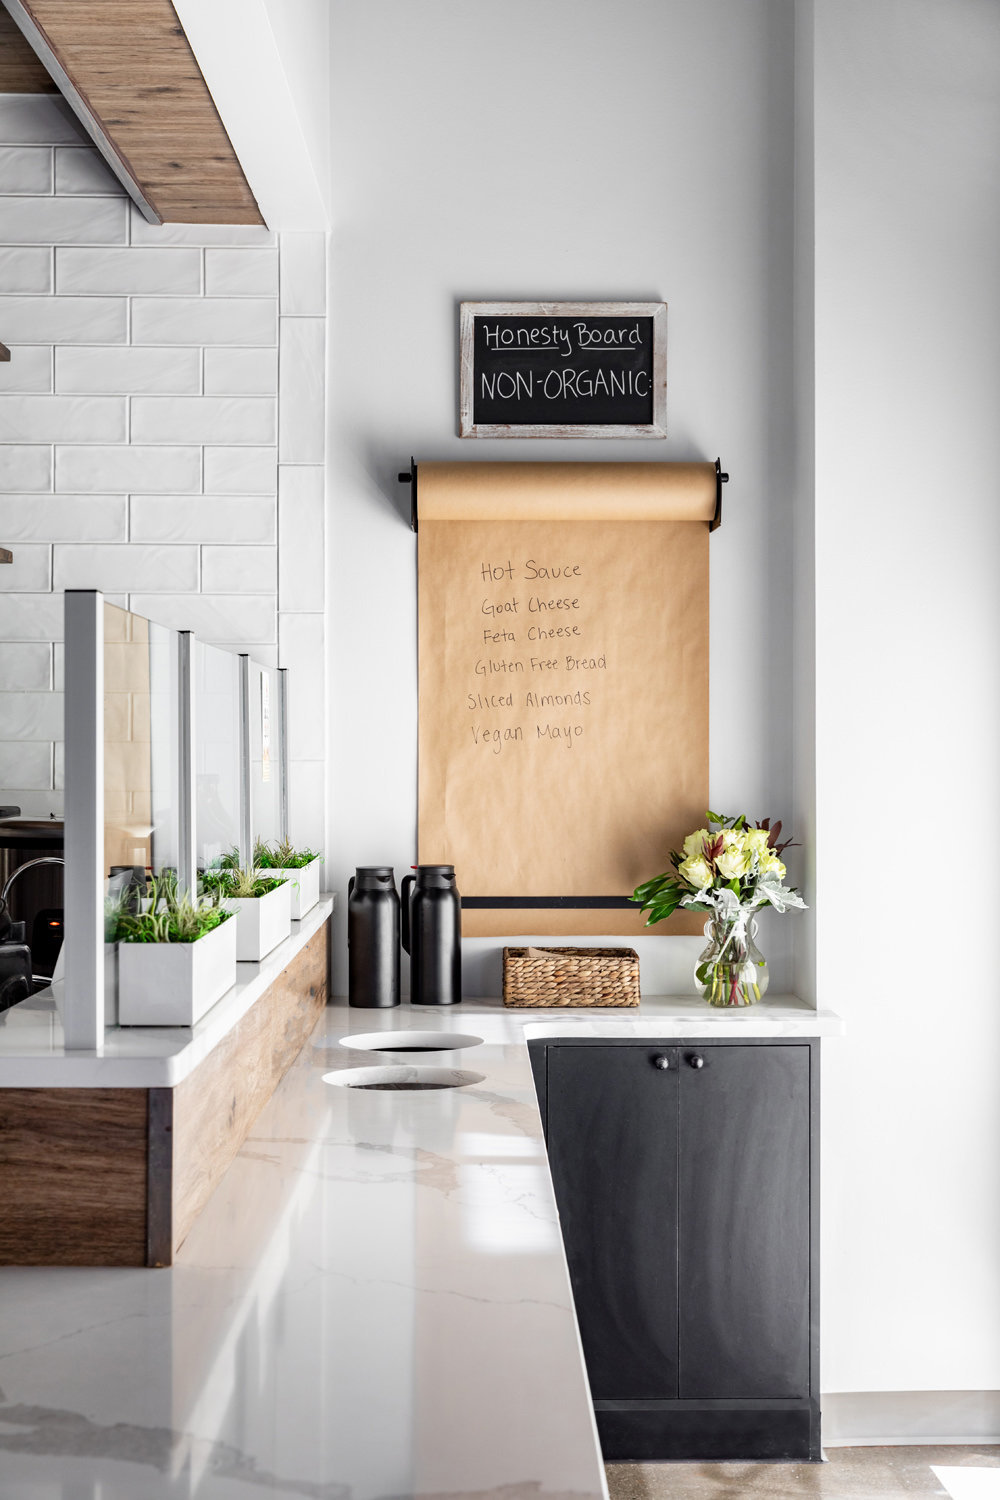 Dominique-DeLaney-Lotus-Soul-Juice-Bar-Wellness-Cafe-Design-6